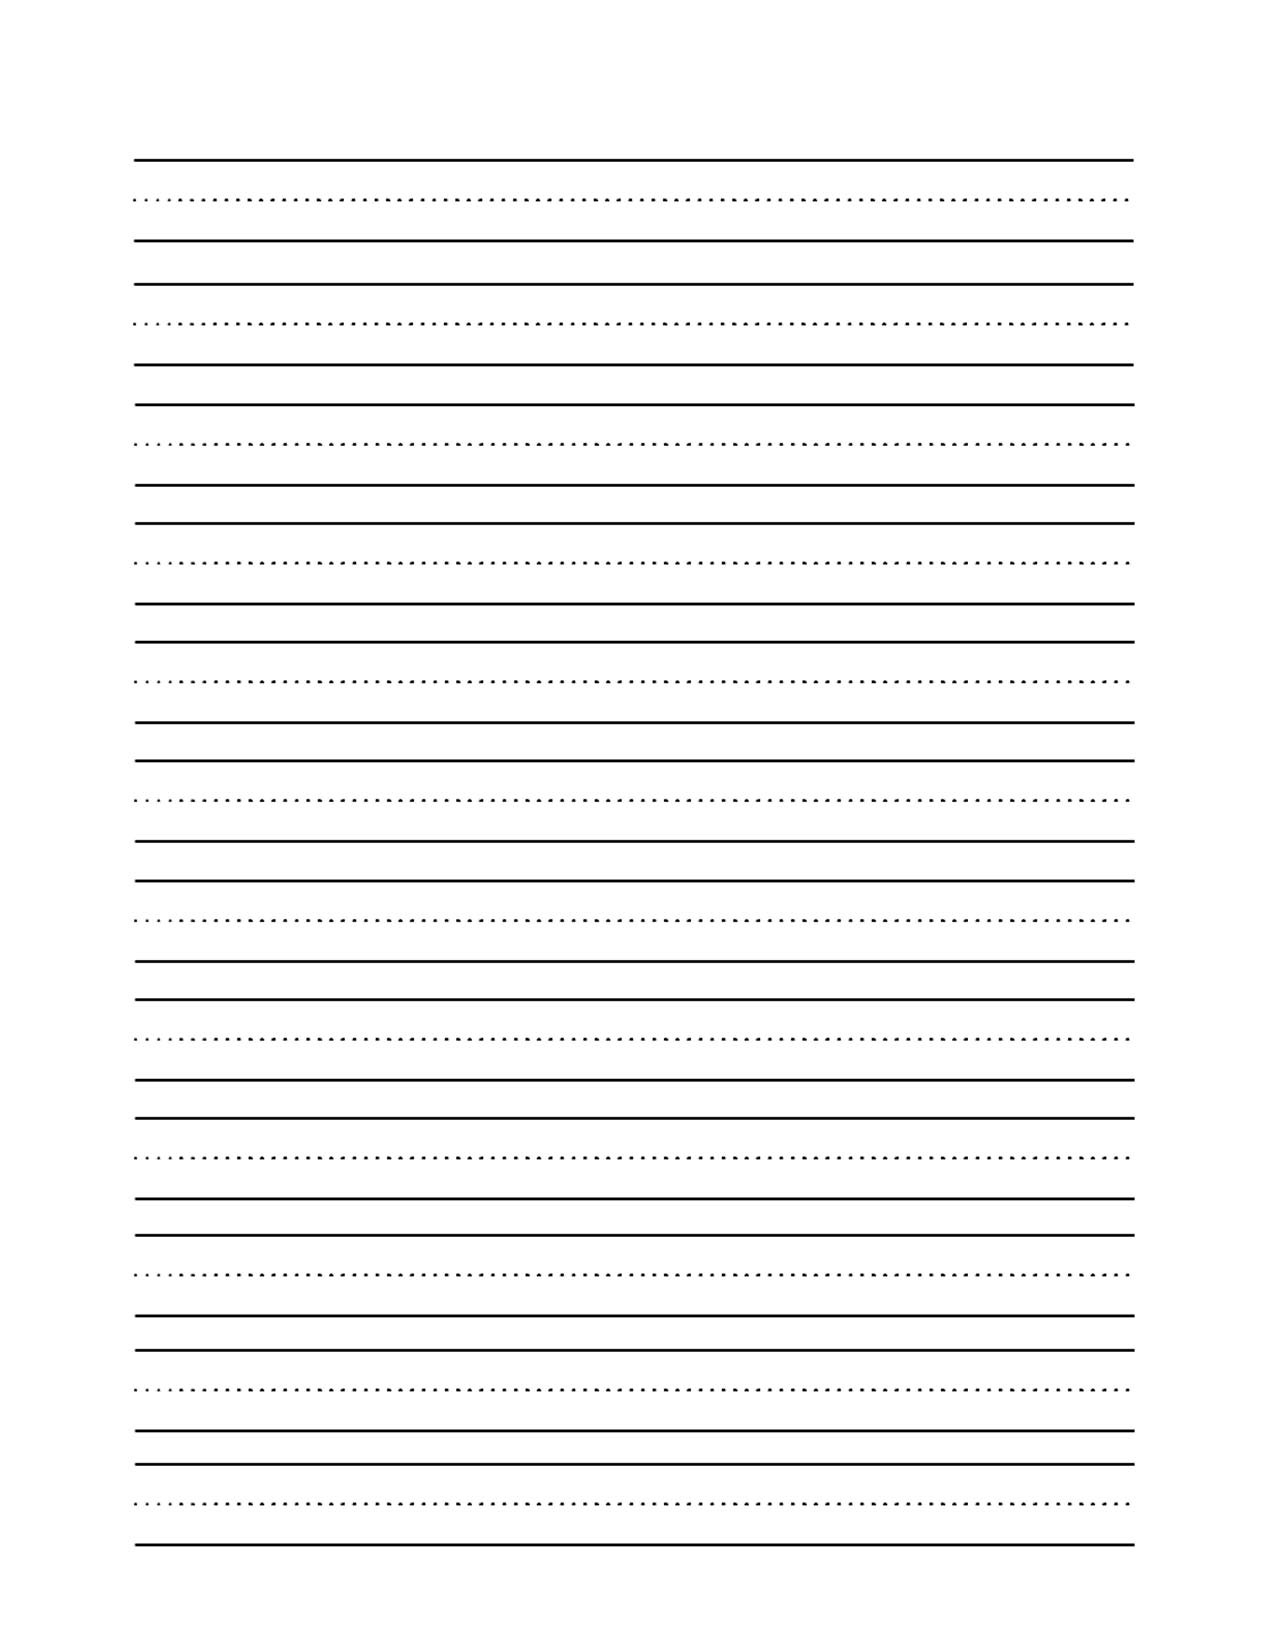 Tracing Worksheet Lined Paper